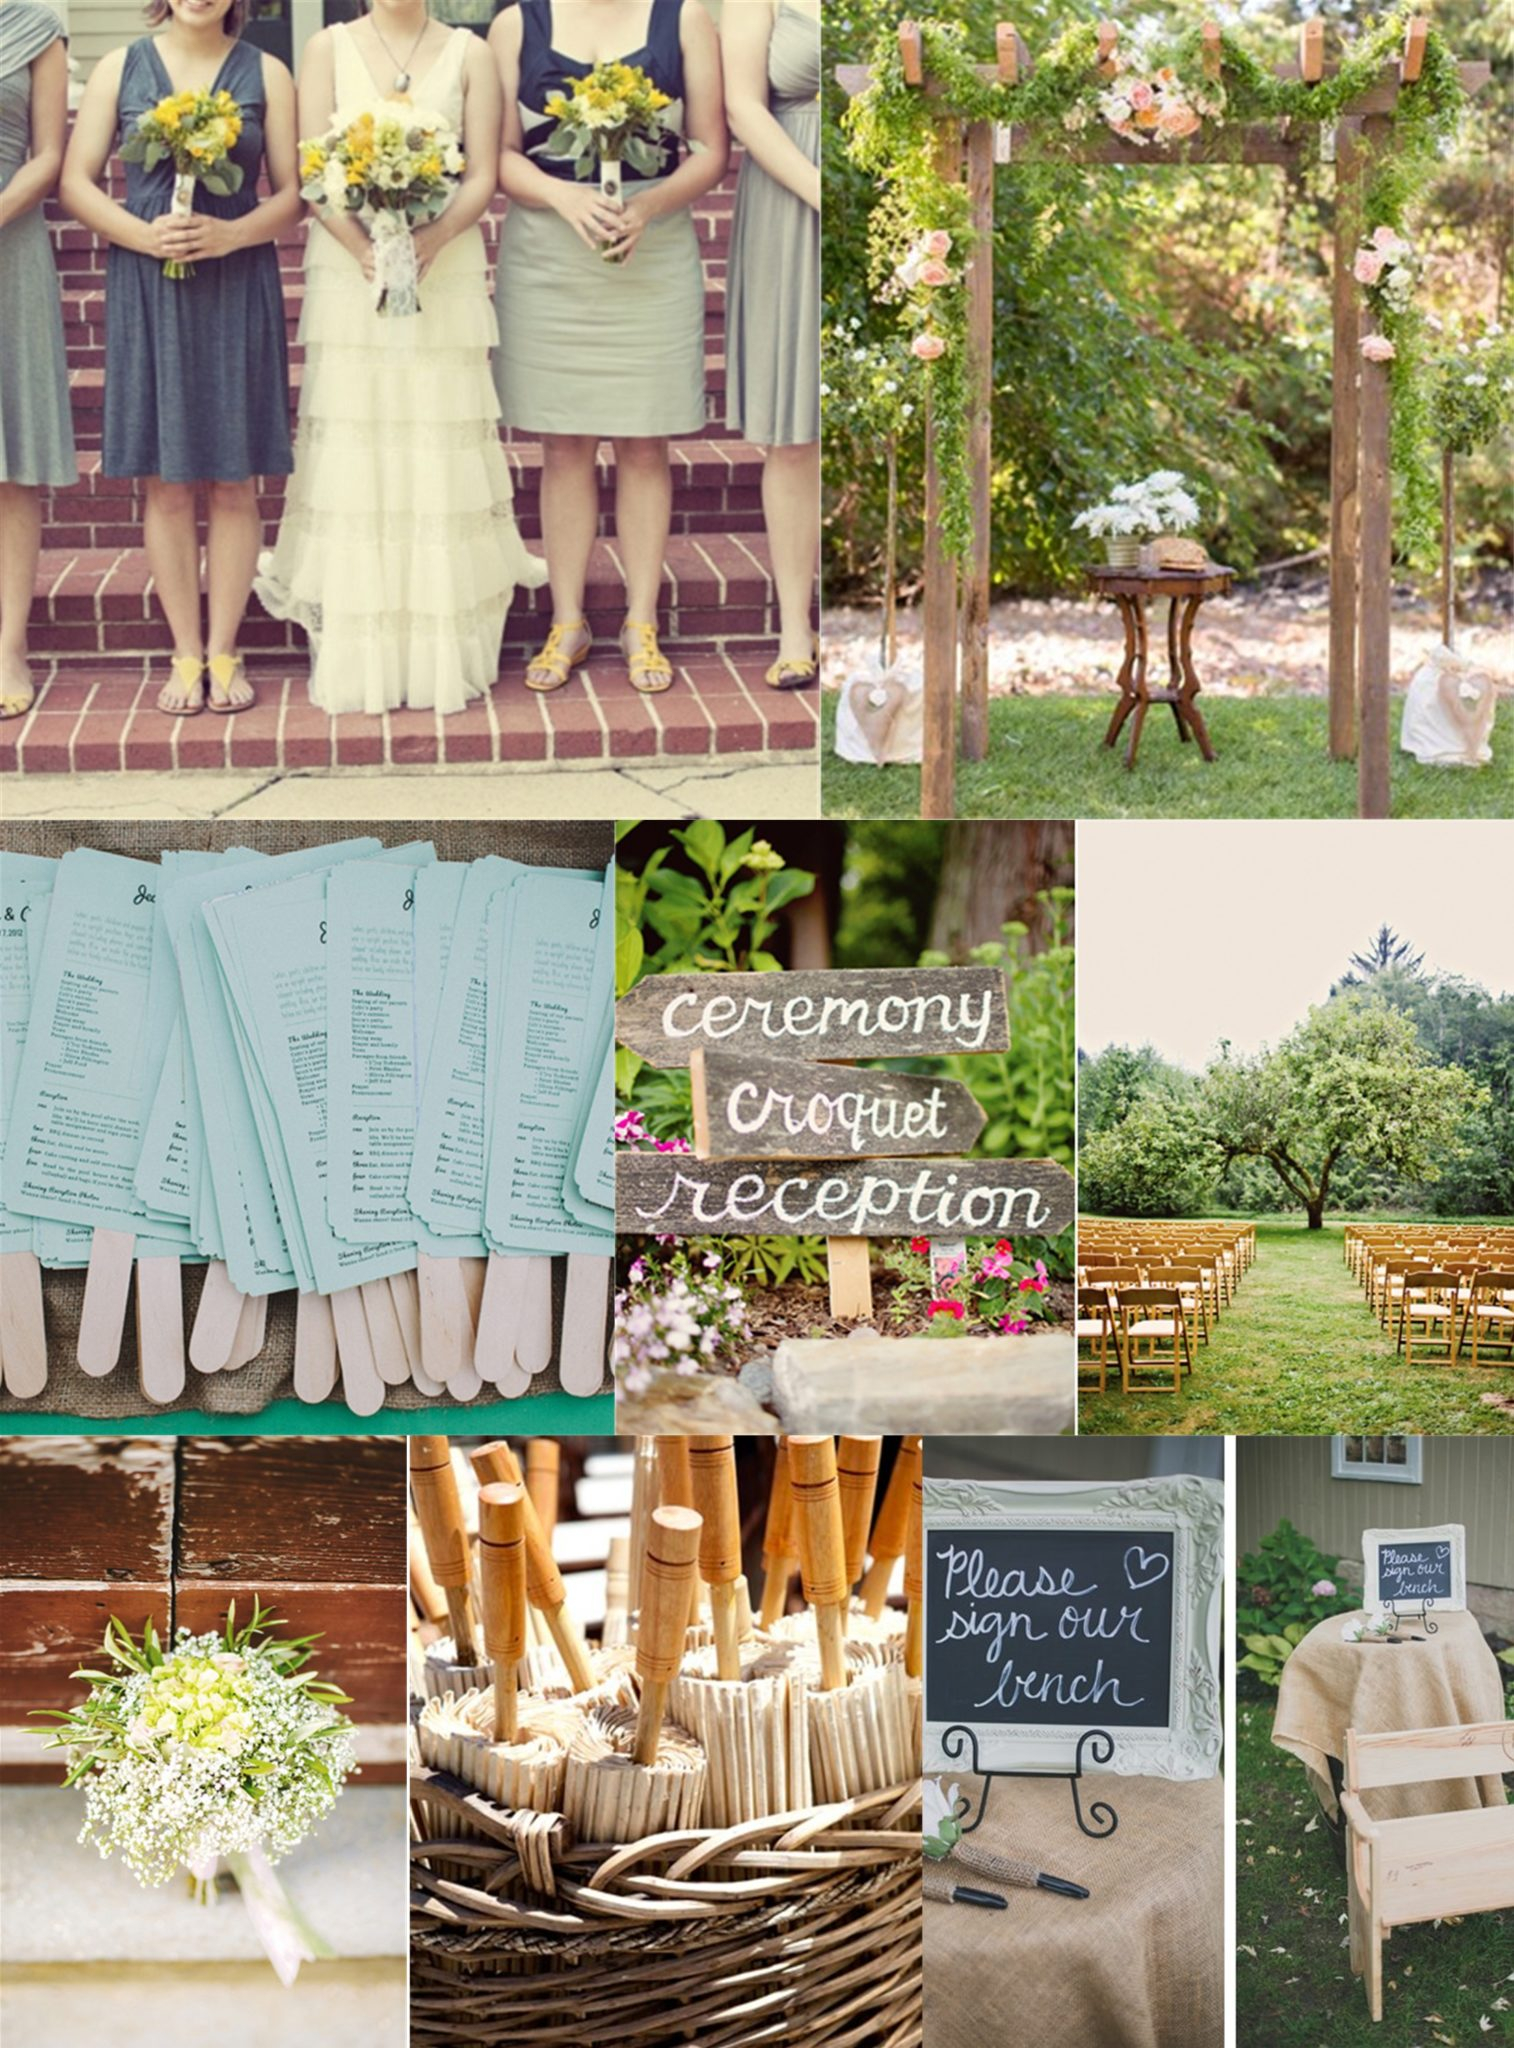 Essential Guide To A Backyard Wedding On A Budget in 11 Genius Concepts of How to Upgrade Wedding Backyard Ideas